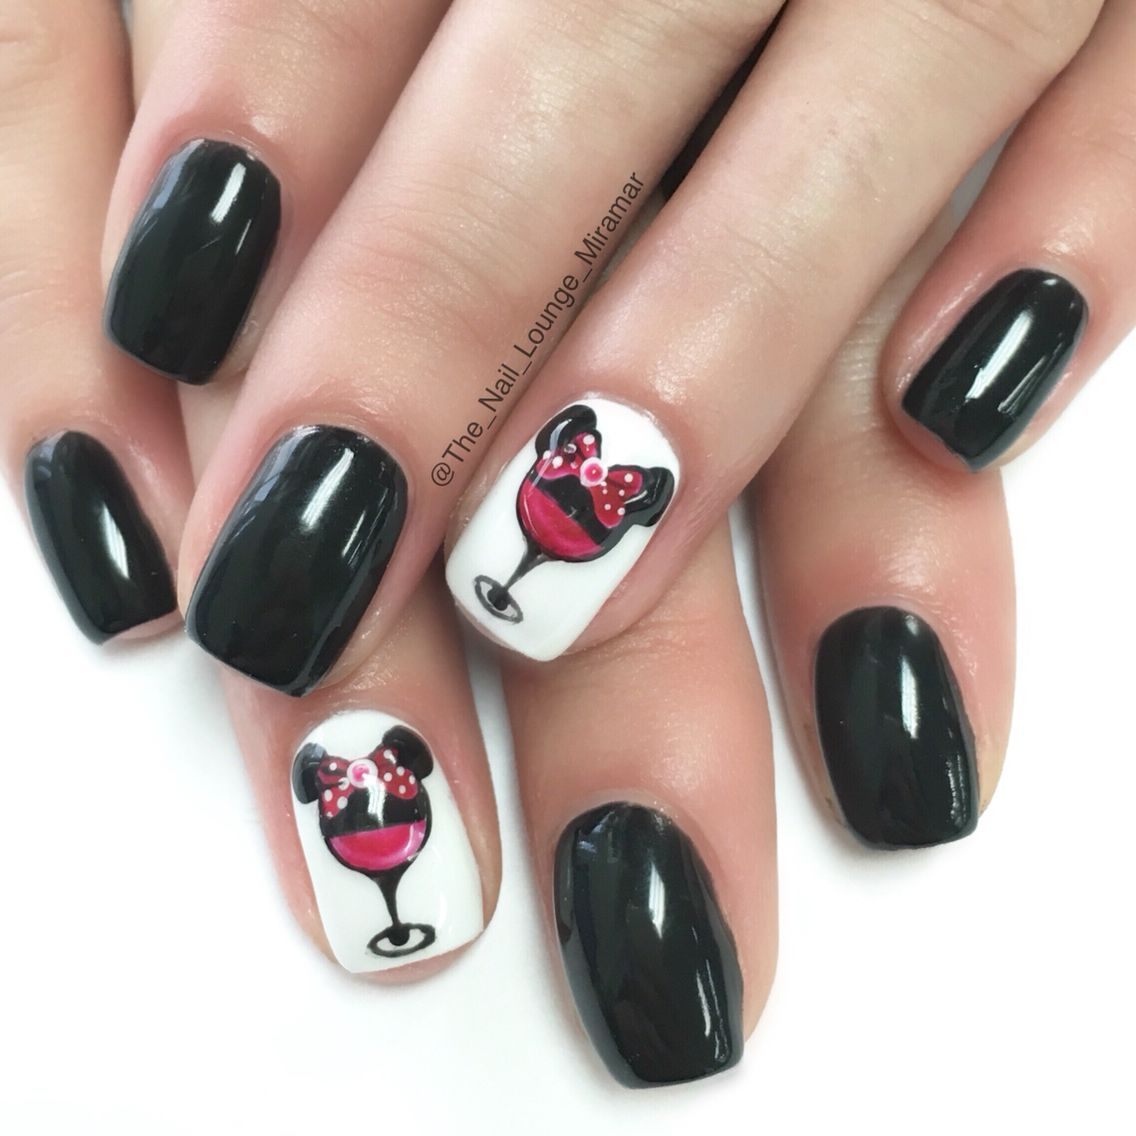 Epcot Disney\'s food and wine Mickey Mouse nail art design | Nail Art ...